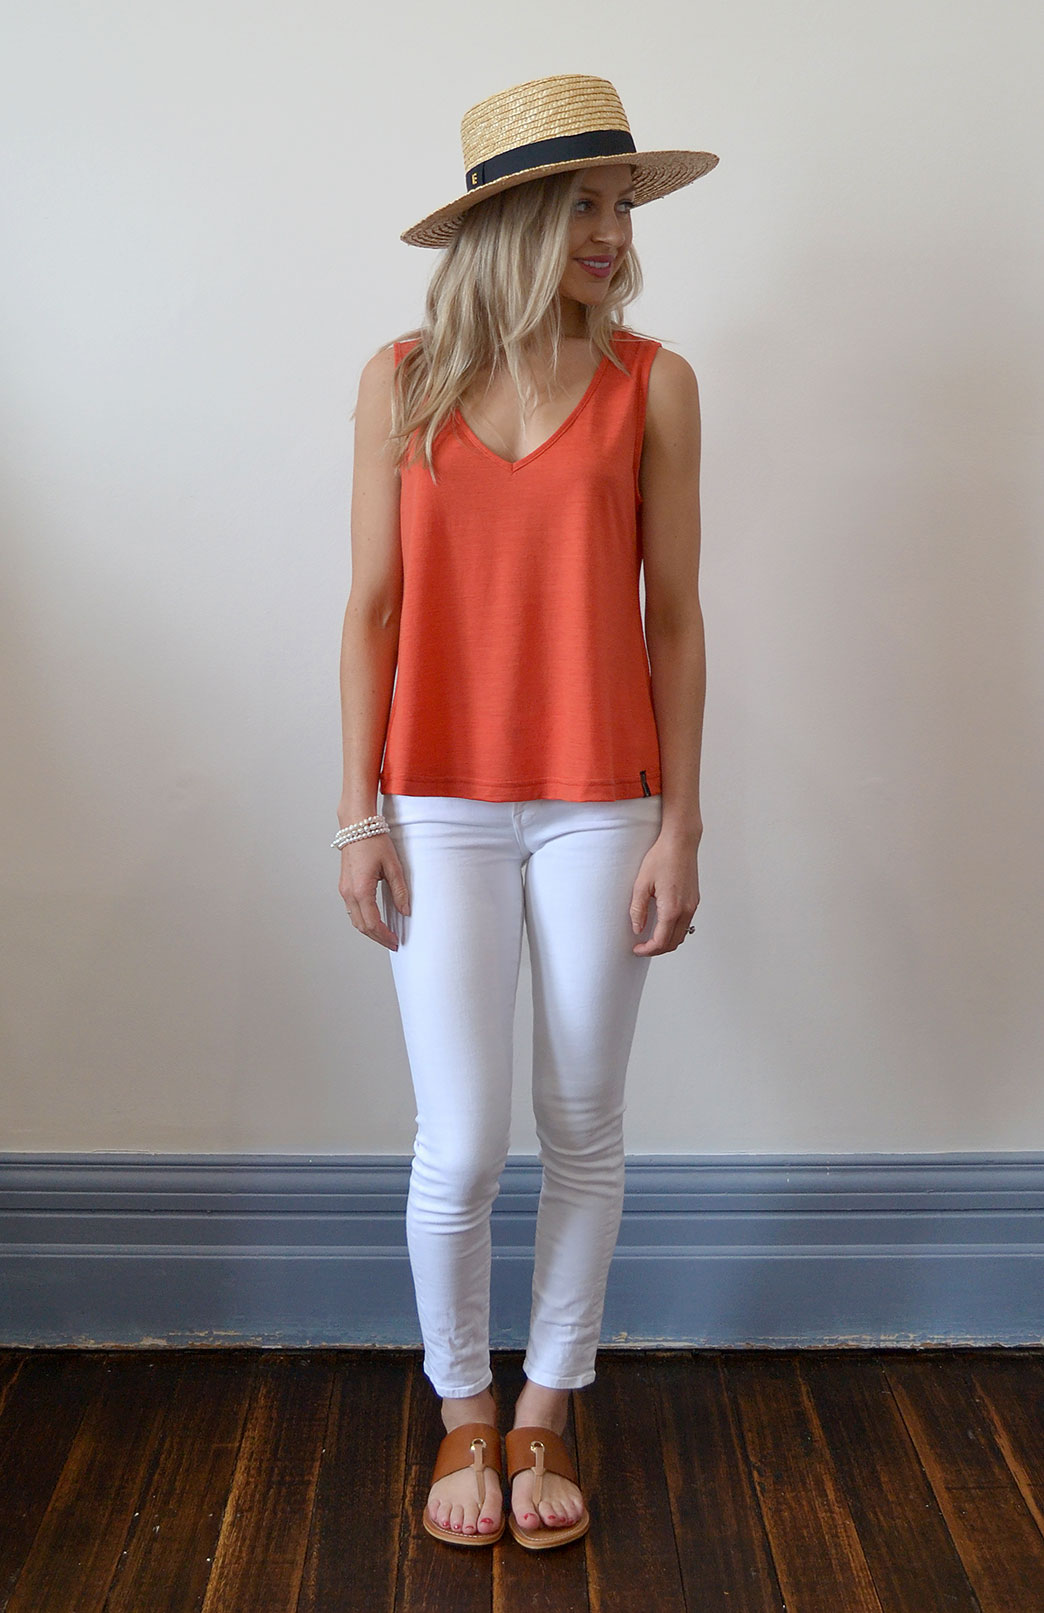 Vera Tank Top - Women's Paprika Orange Sleeveless V-Neck Wool & Modal Tank Top - Smitten Merino Tasmania Australia